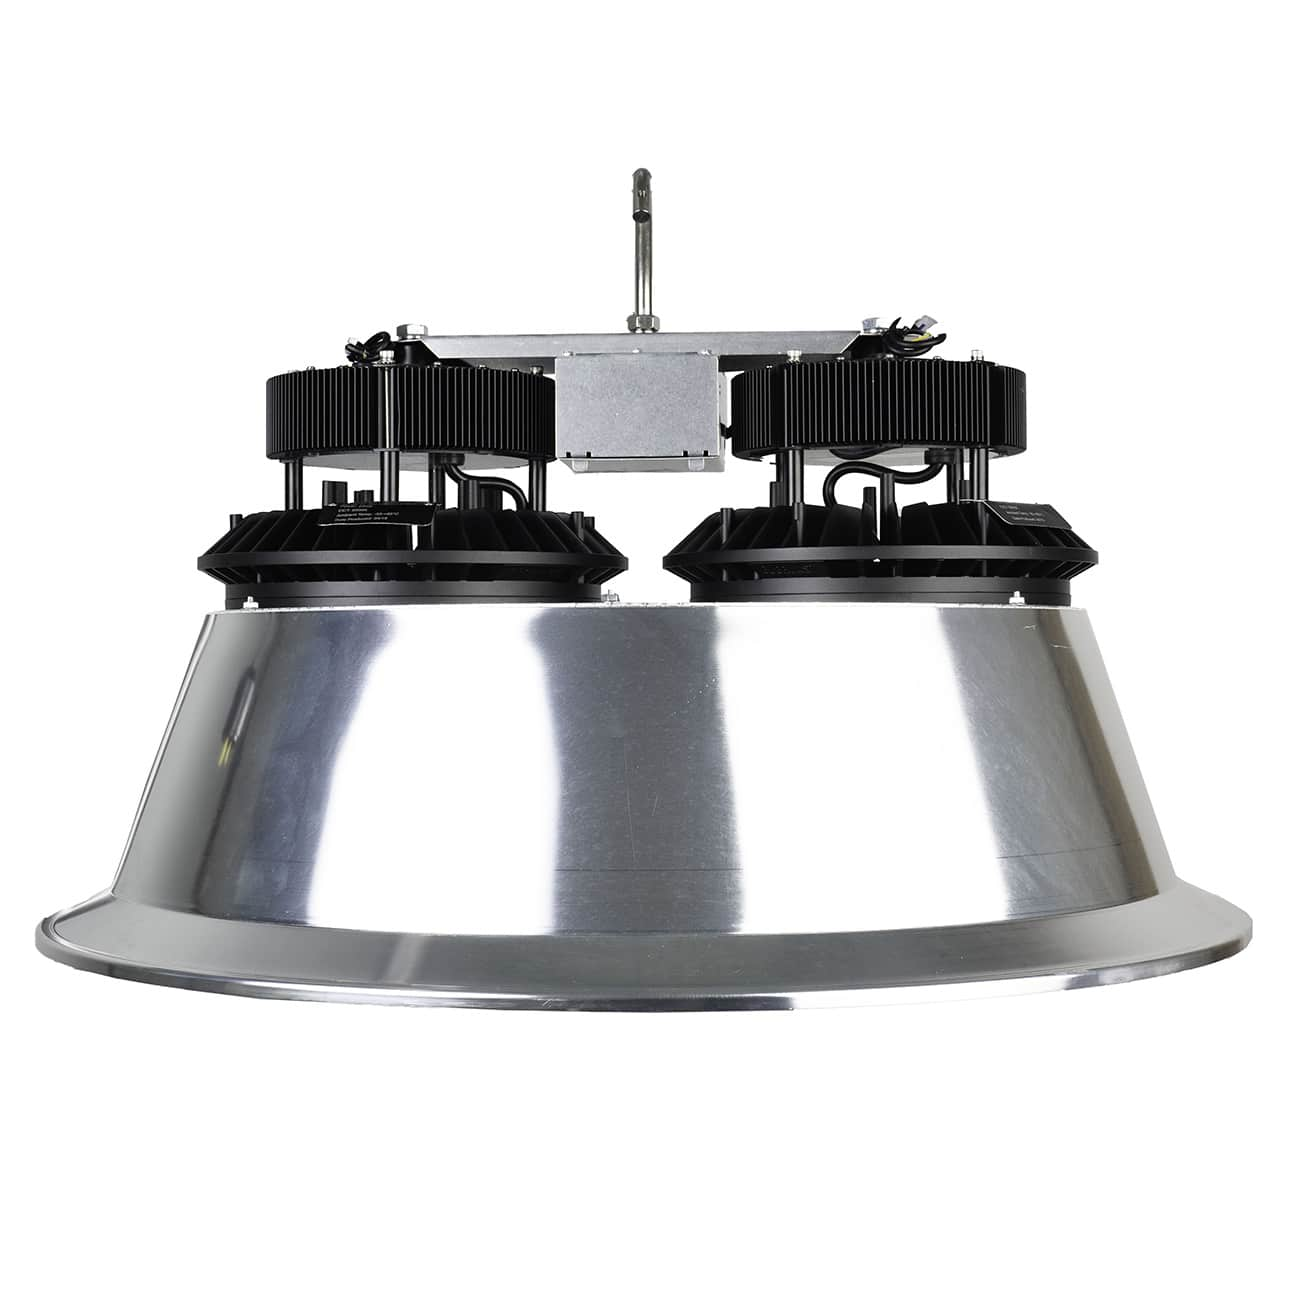 EverLast Lighting 65C15B High Temperature Multi Module LED High Bay